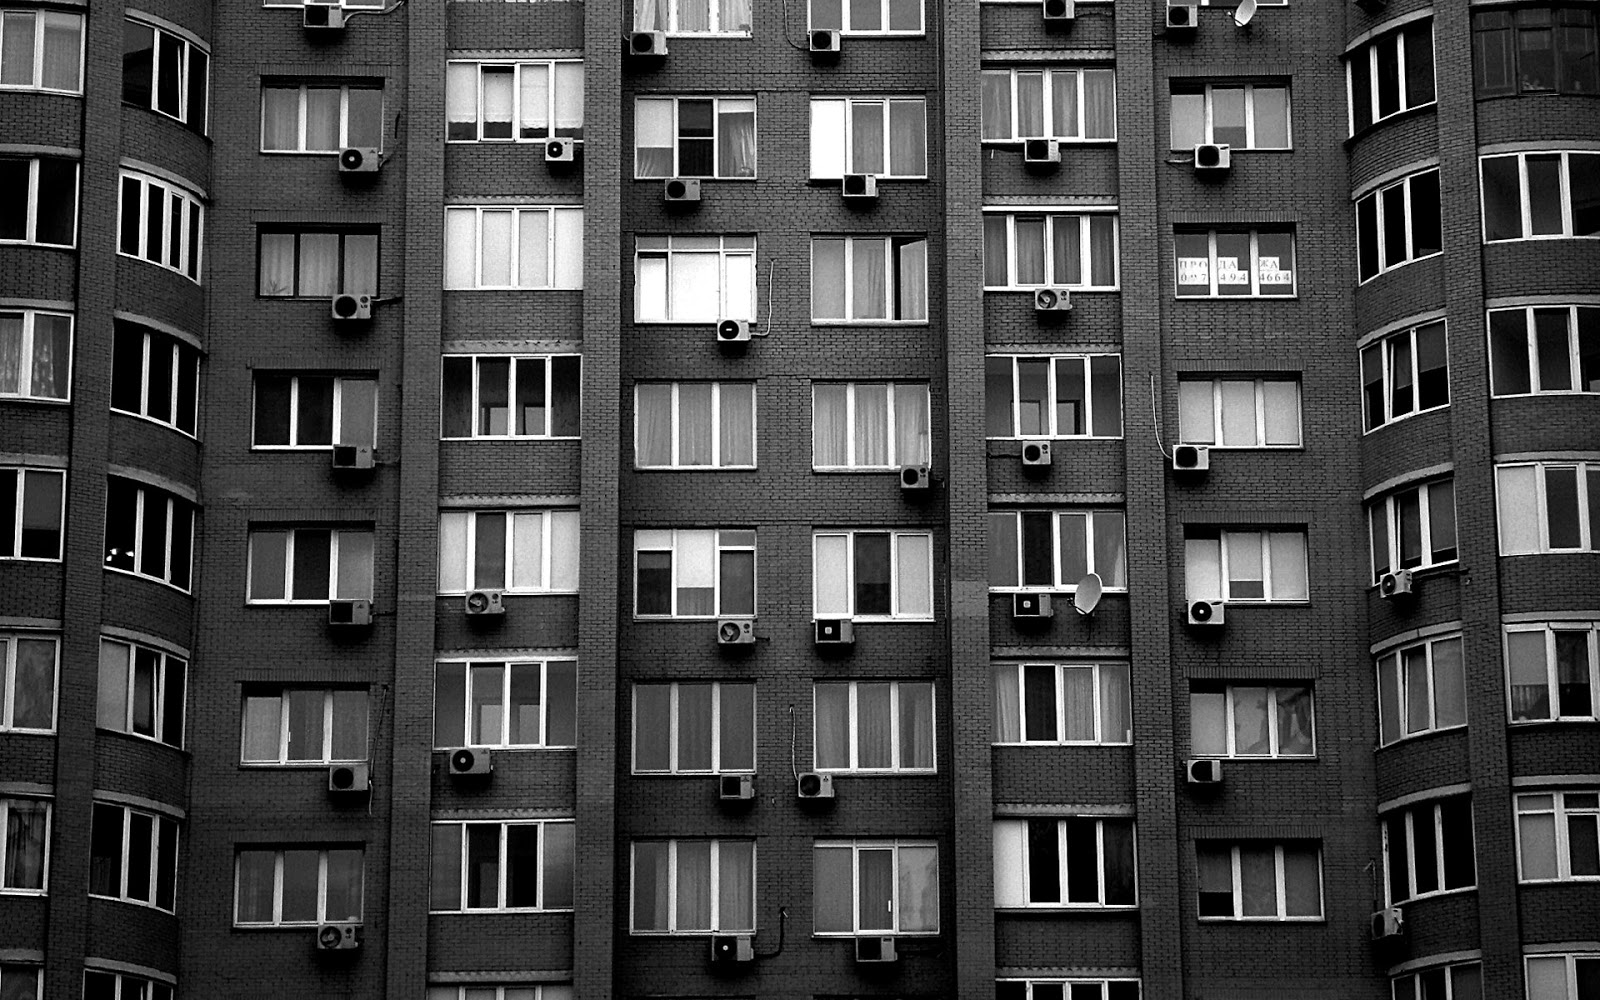 apartment building wallpapers: Apartment Building Wall